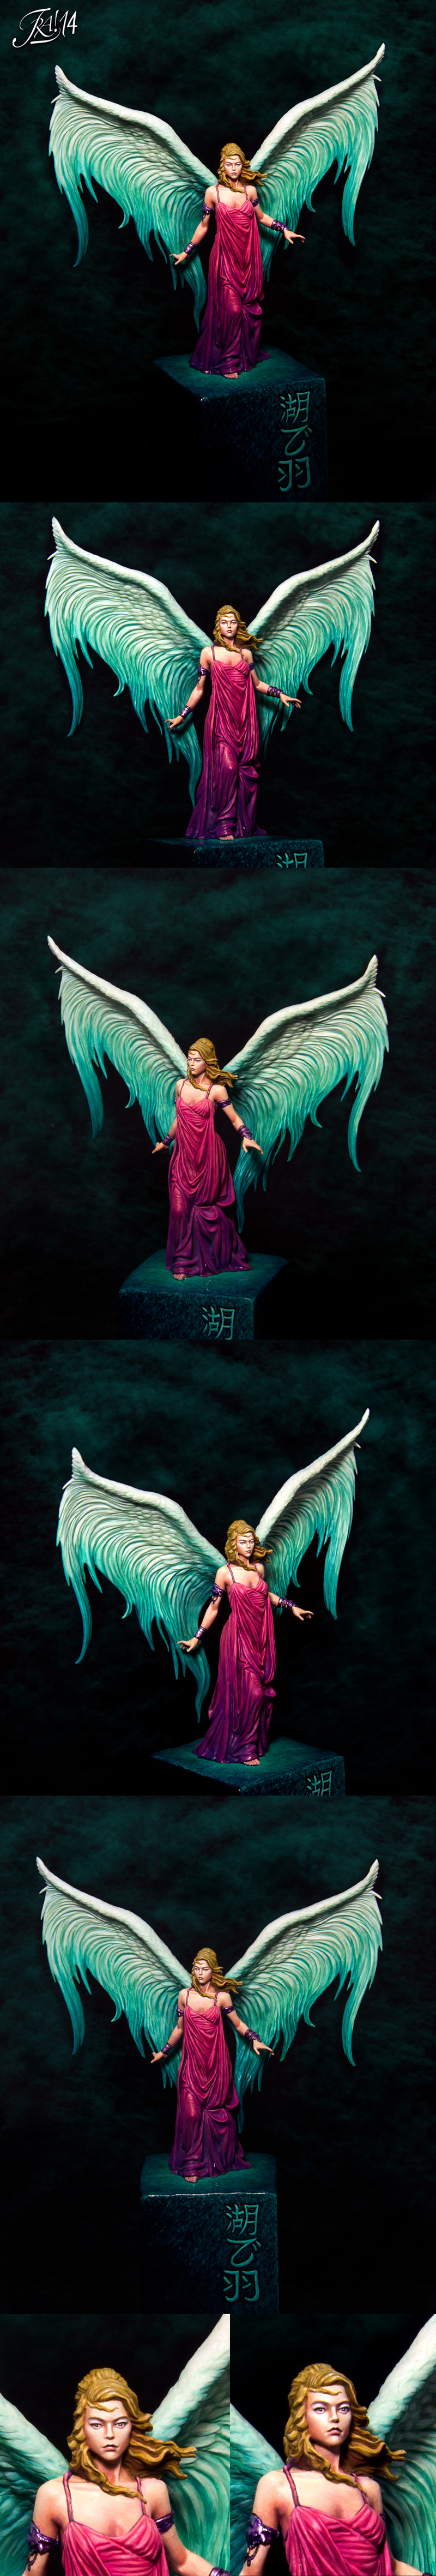 Wings over the lake (lilith)